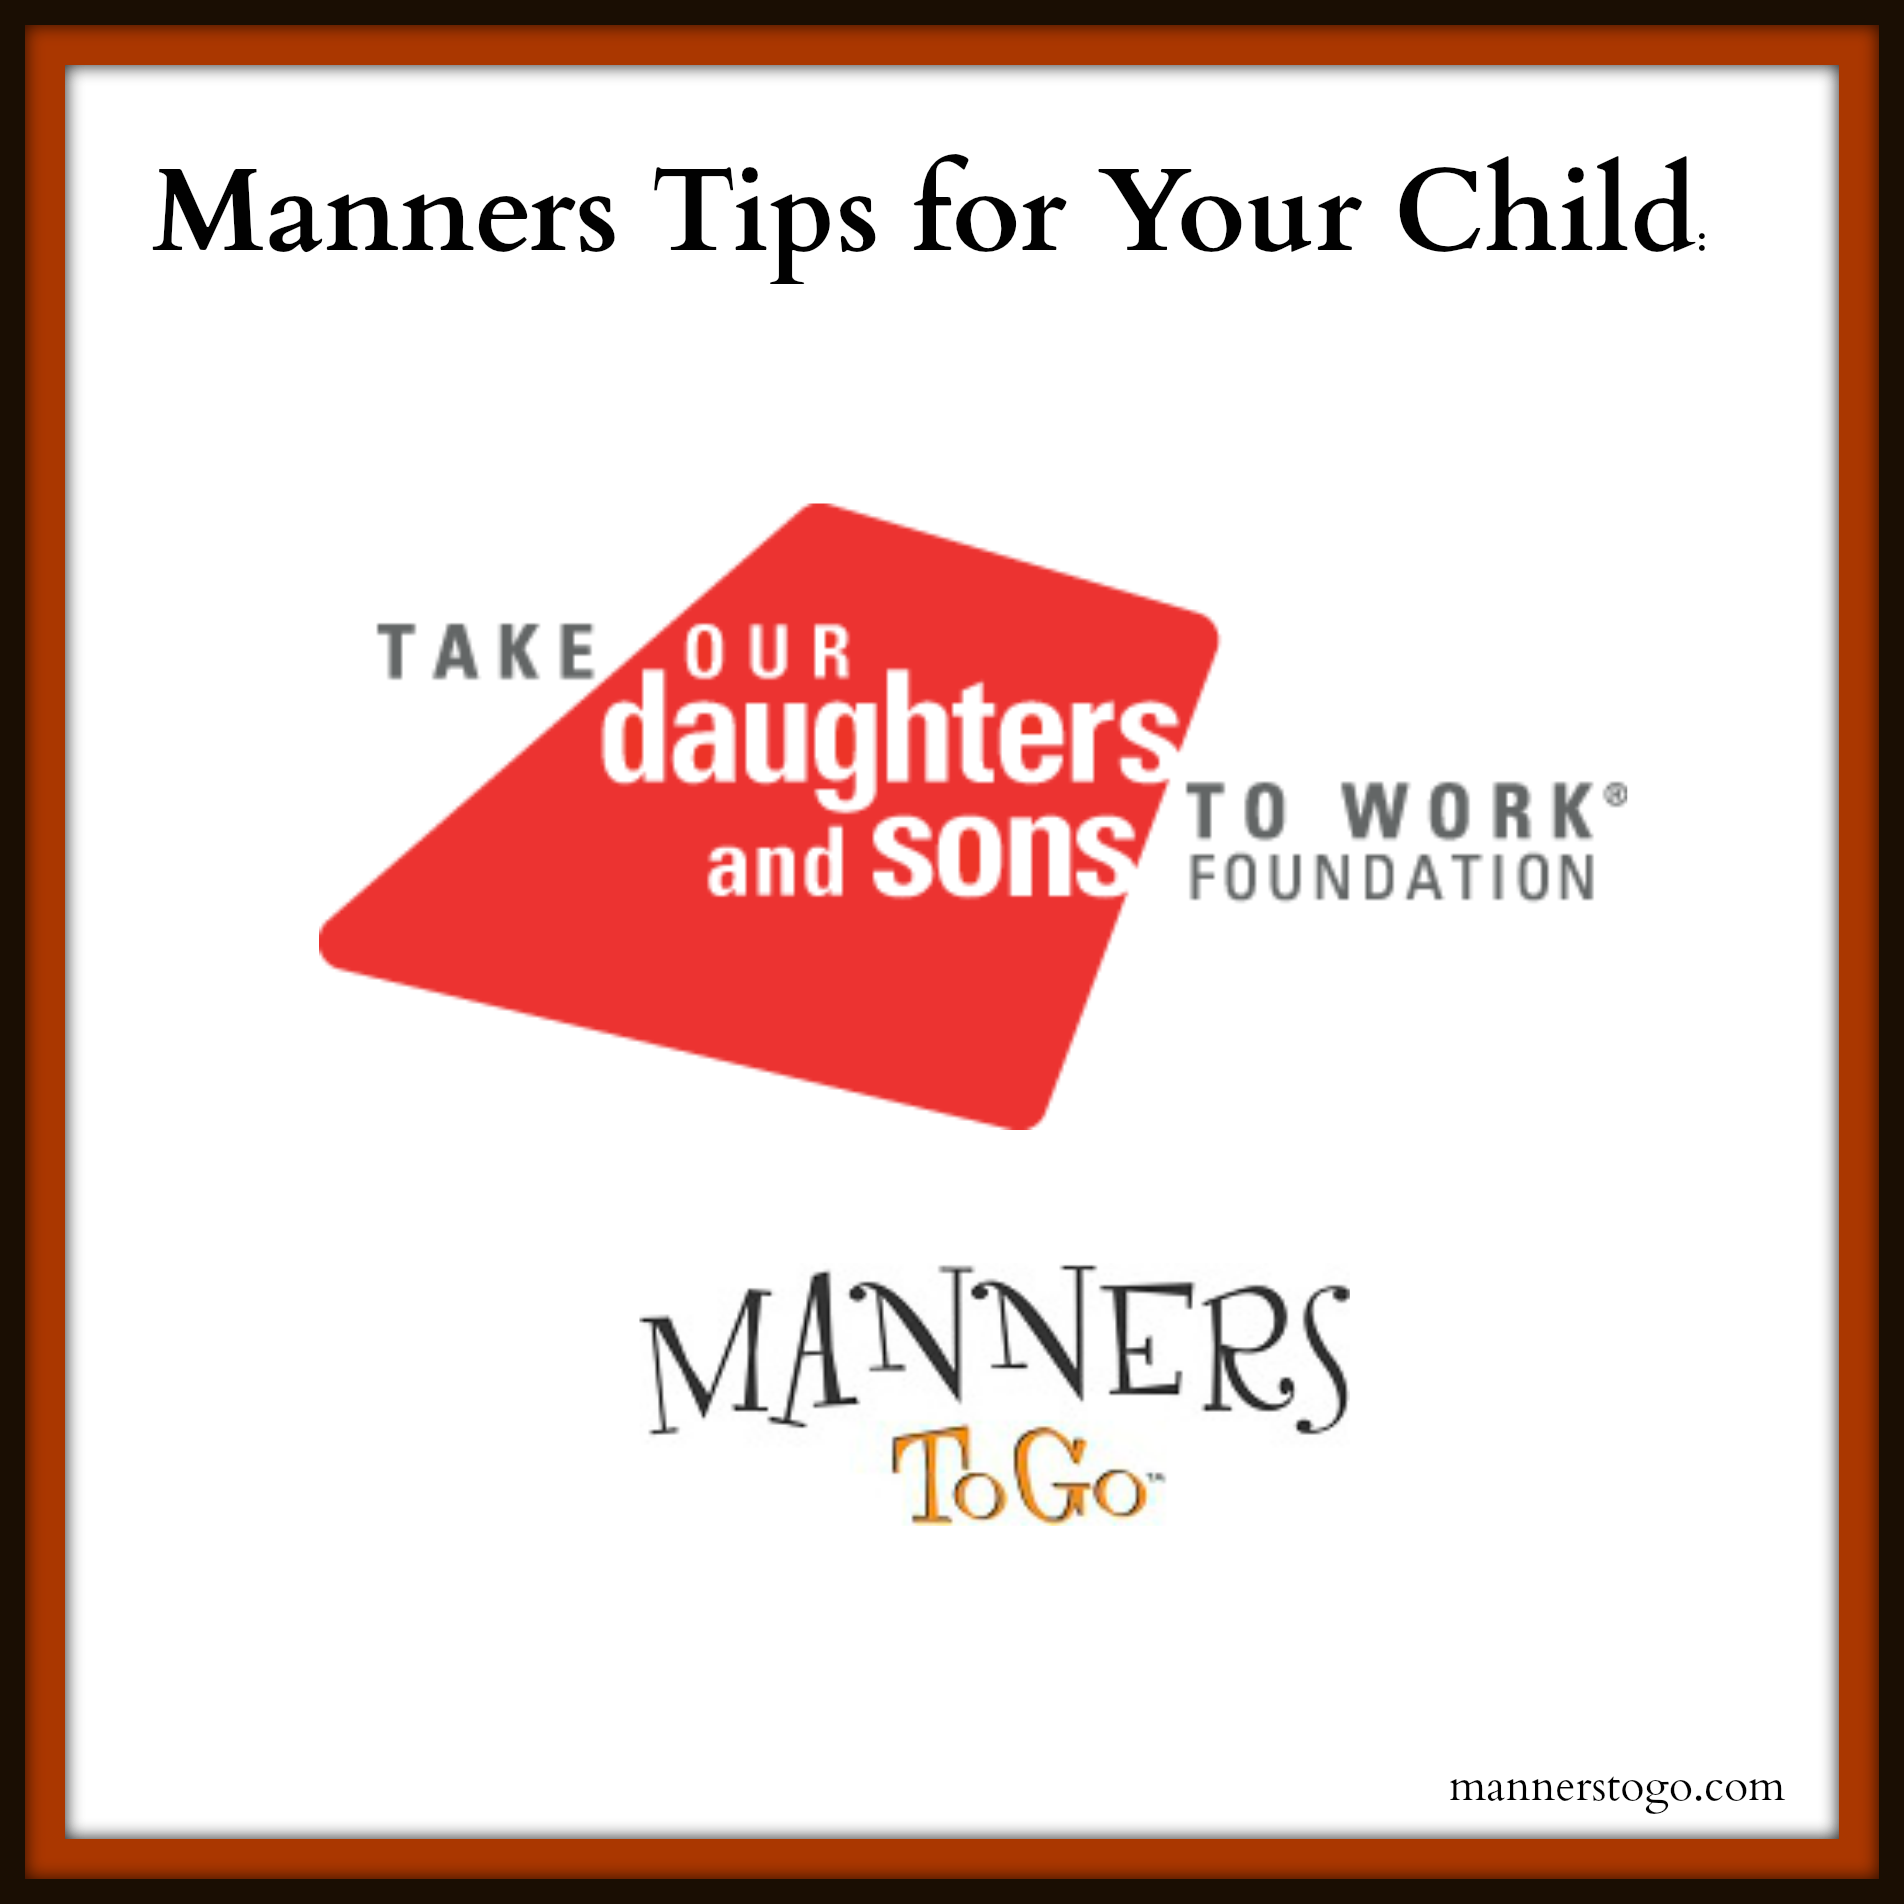 good manners are a waste of time in modern world Etiquette (/ ˈ ɛ t ɪ ˌ k ɛ t / or / ˈ ɛ t ɪ k ɪ t /, french: ) is a code of behavior that delineates expectations for social behavior according to contemporary conventional norms within a society, social class, or group the french word étiquette, literally signifying a tag or label, was used in a modern sense in english around 1750 etiquette is behaviour that assists survival and.